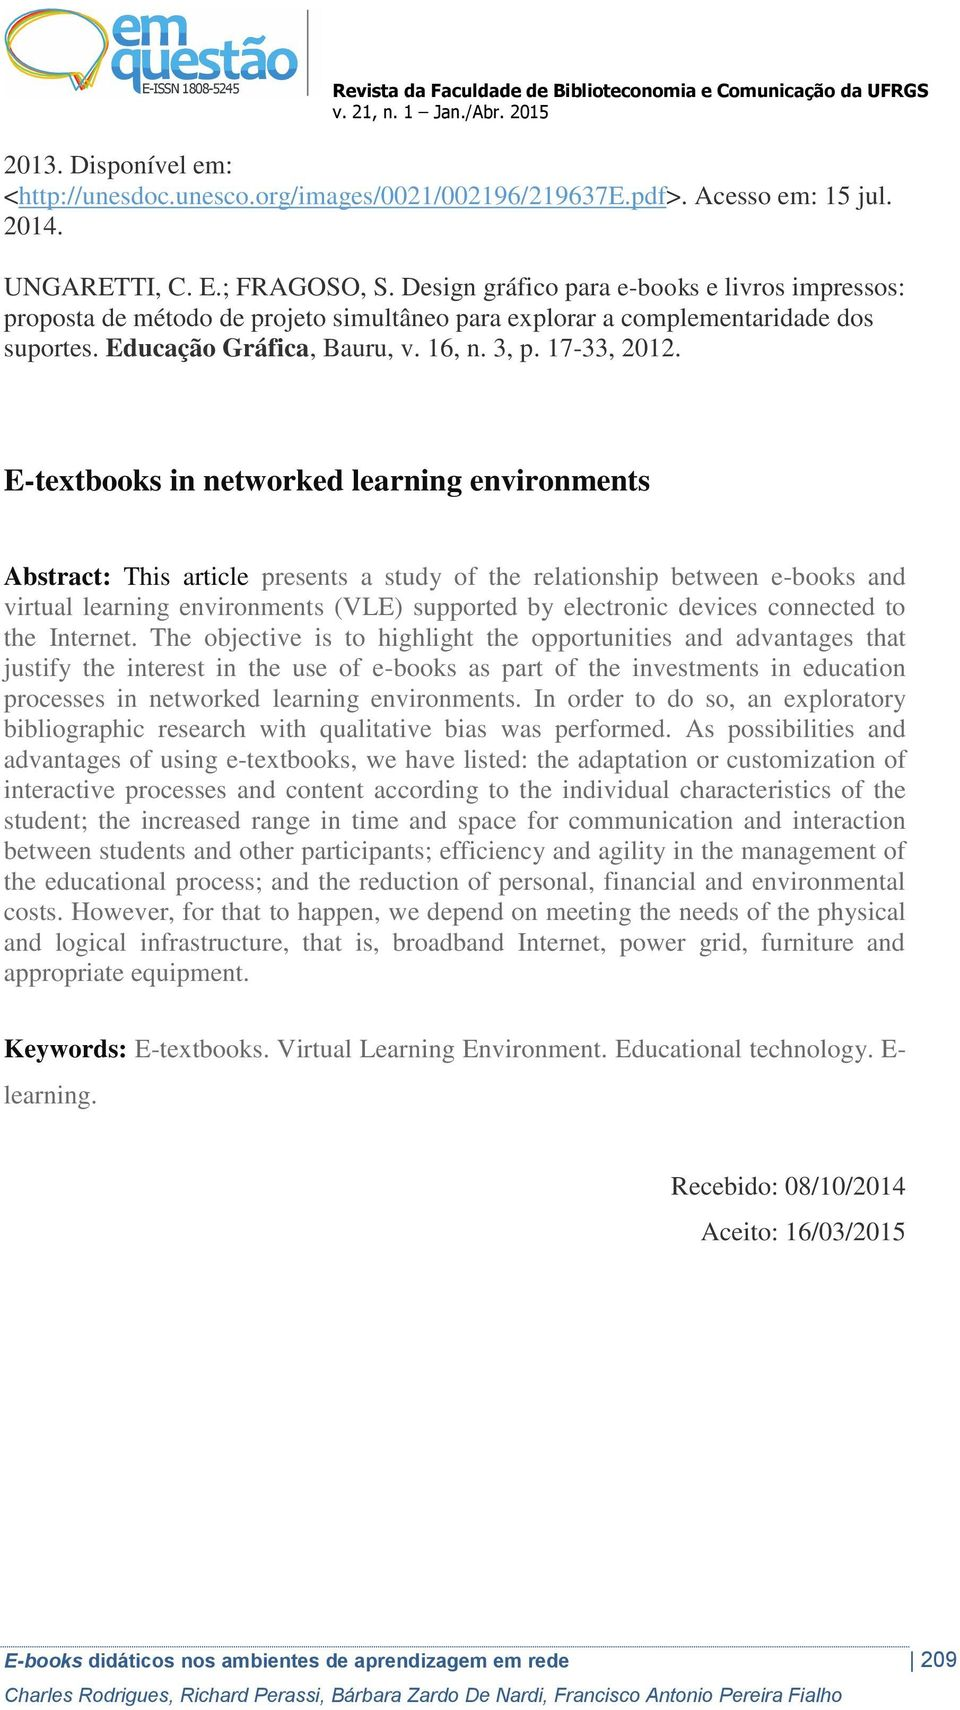 E-textbooks in networked learning environments Abstract: This article presents a study of the relationship between e-books and virtual learning environments (VLE) supported by electronic devices